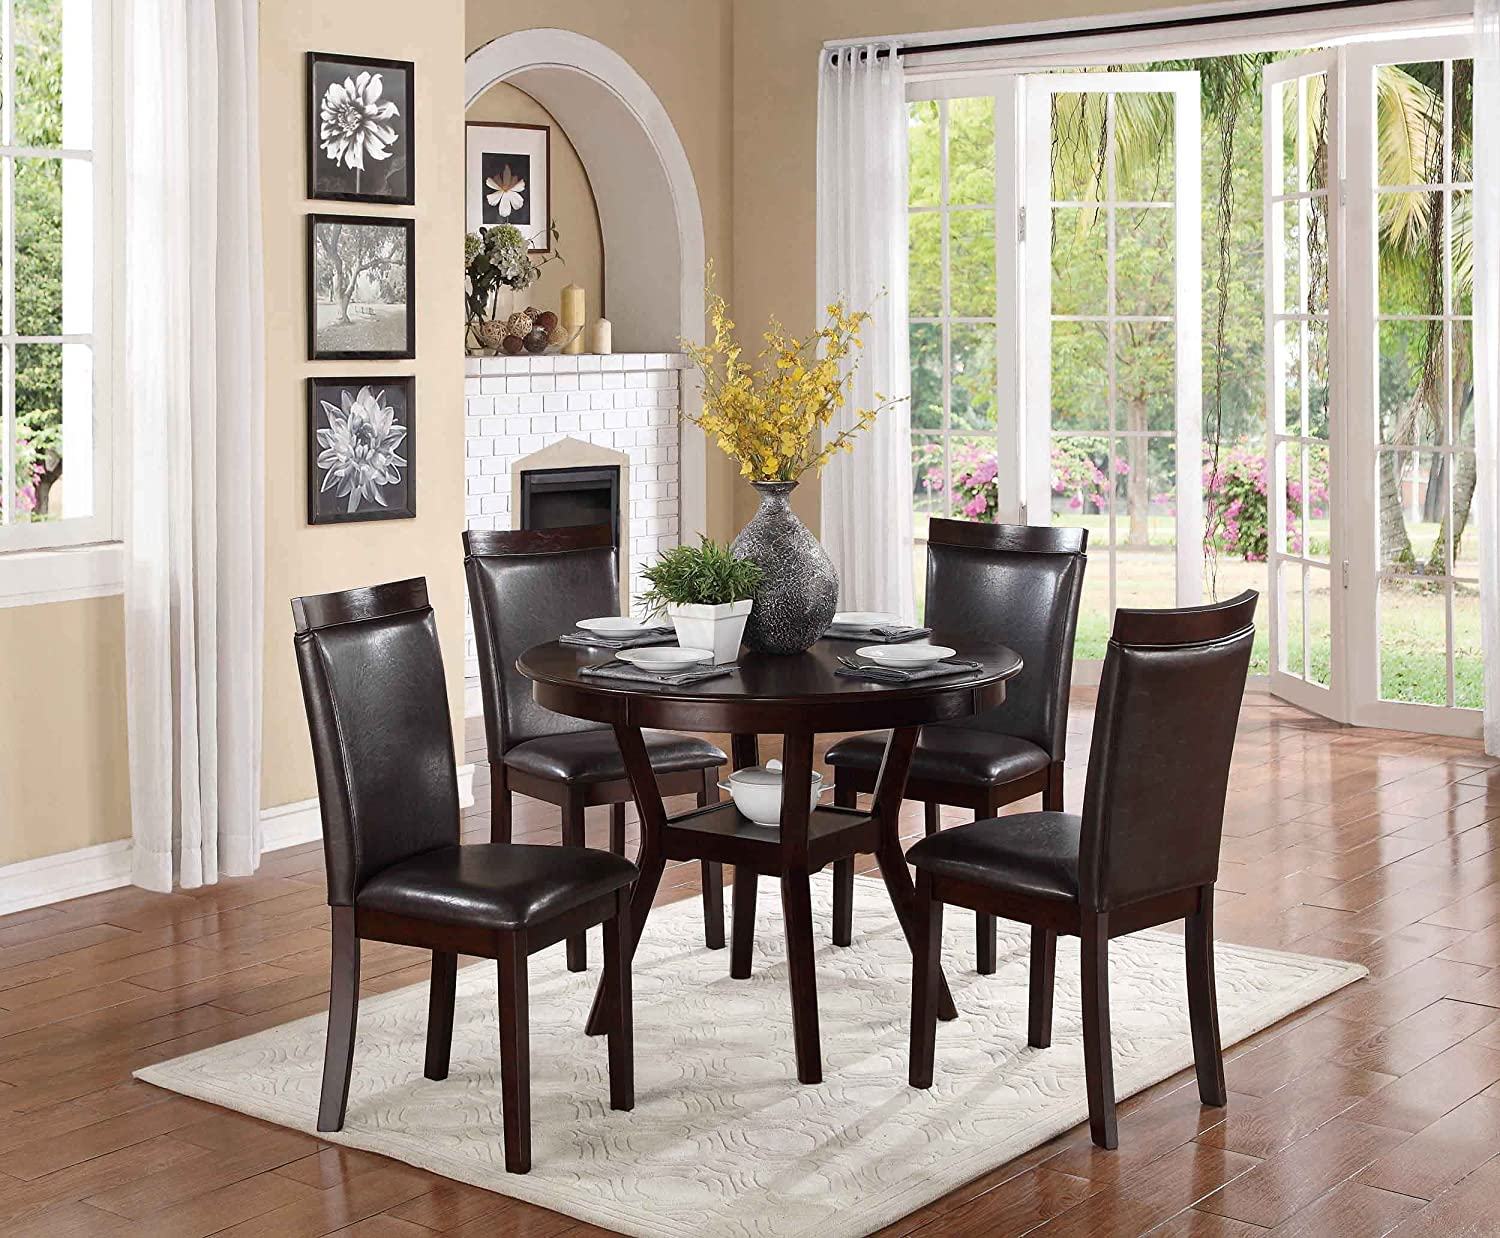 Amazon com homelegance shankmen round 5 piece dining set espresso table chair sets